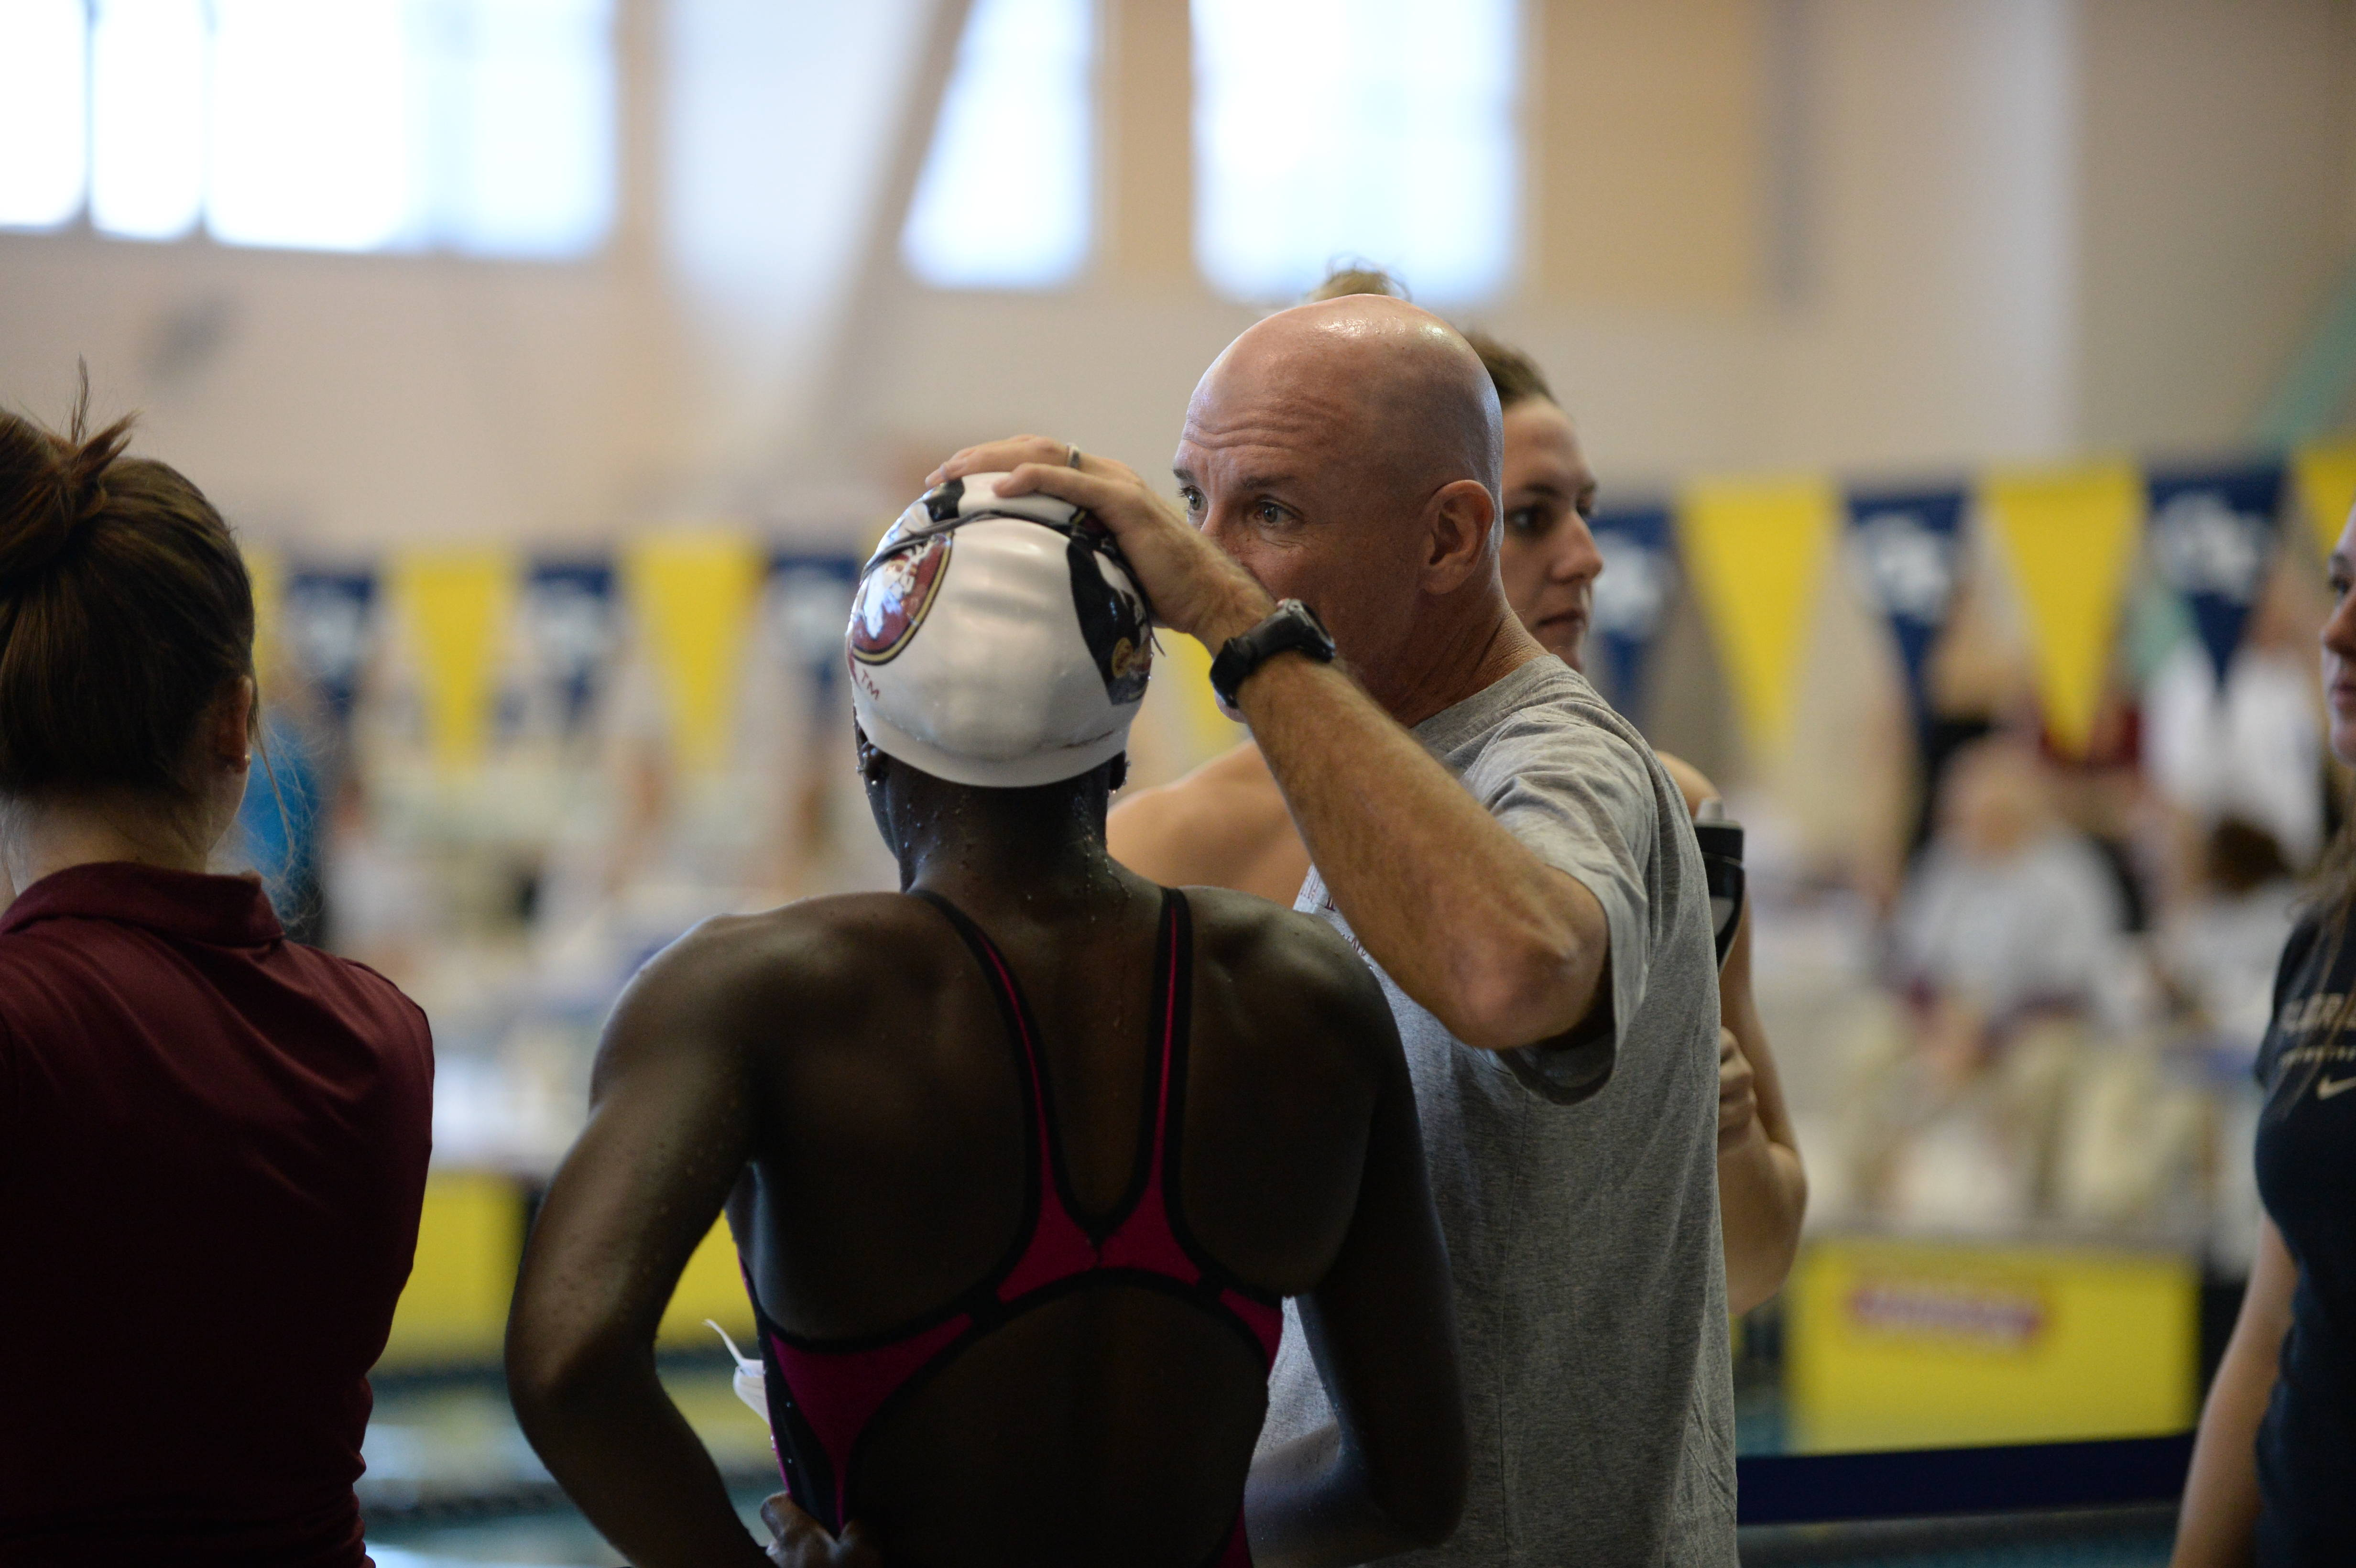 Coach Andy Robins talks with Alexi Smith before her race - Mitch White